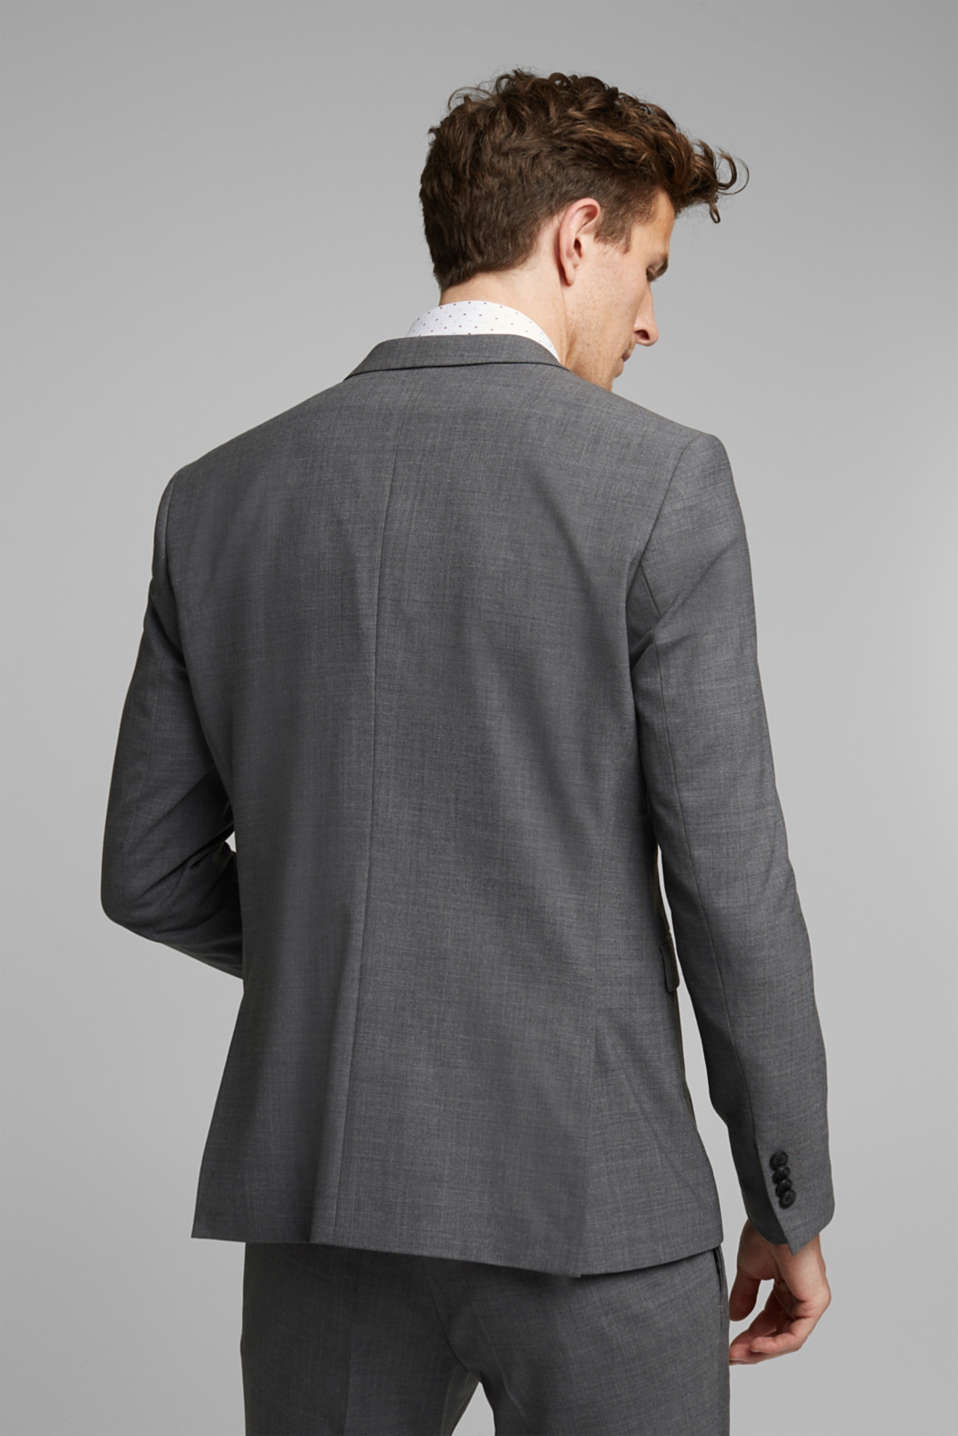 ACTIVE SUIT tailored jacket, wool blend, DARK GREY 5, detail image number 3